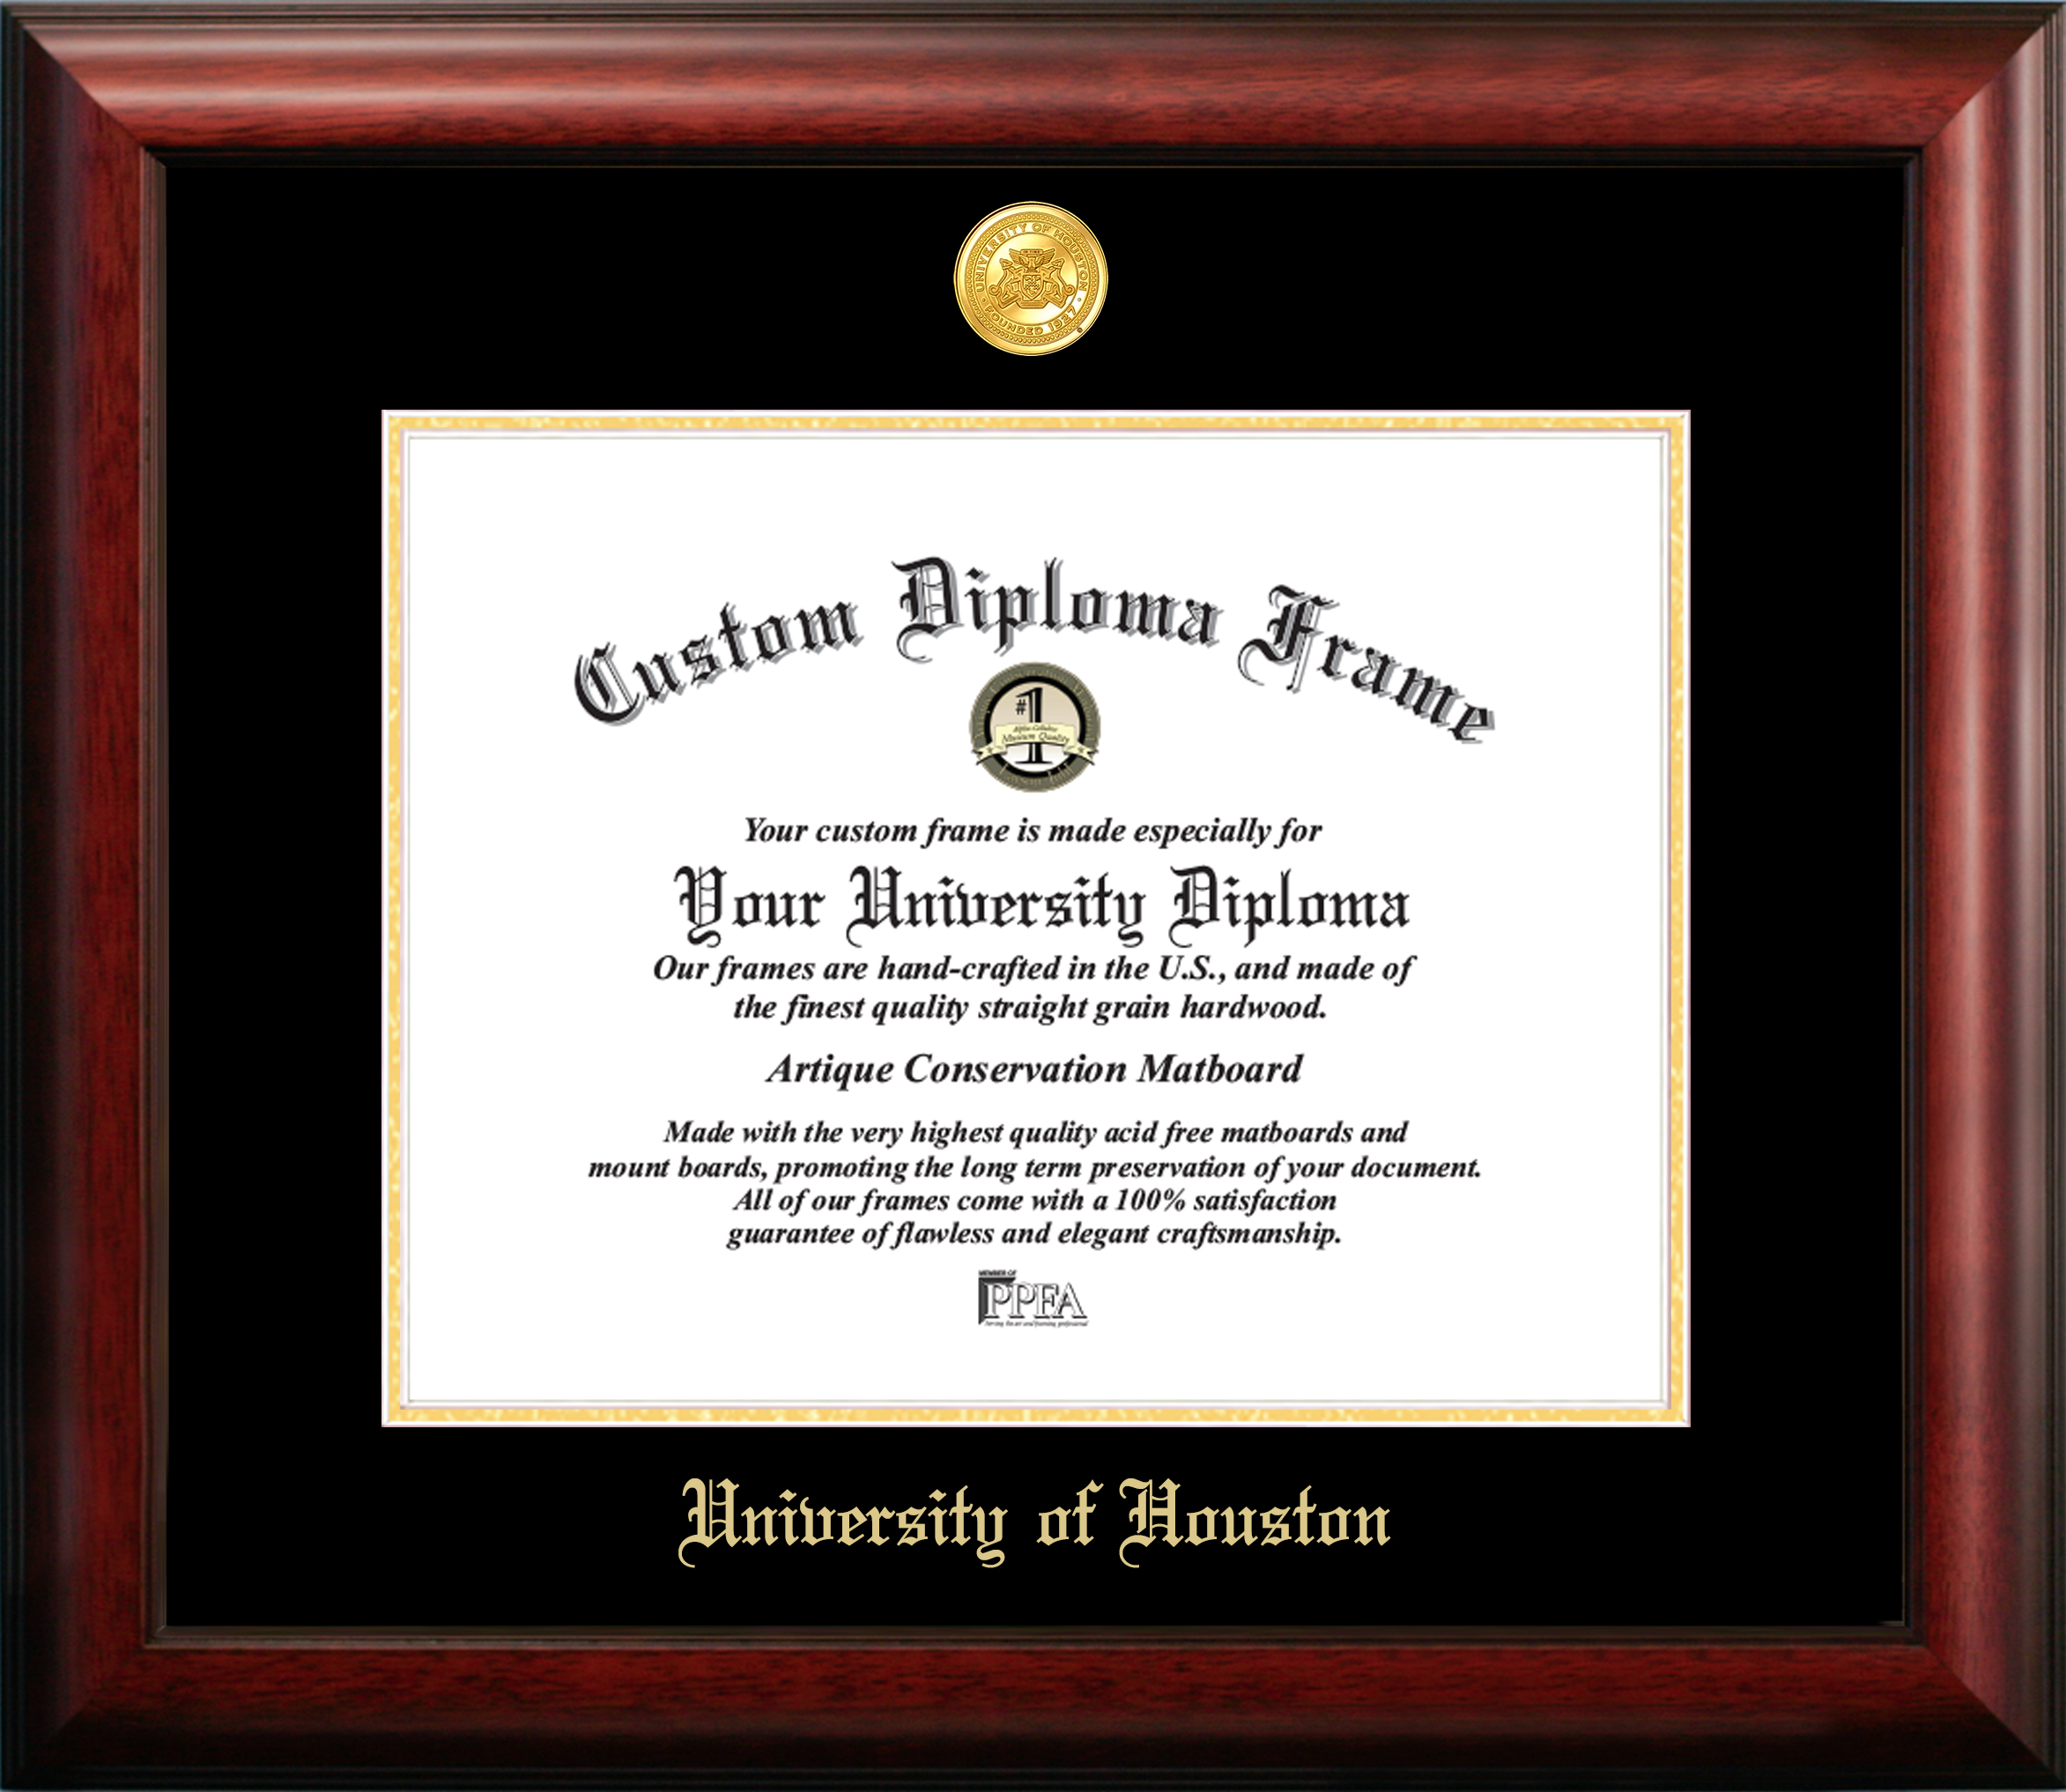 Beautiful Diploma for a Dinosaur lover,..great conversation piece great gift!